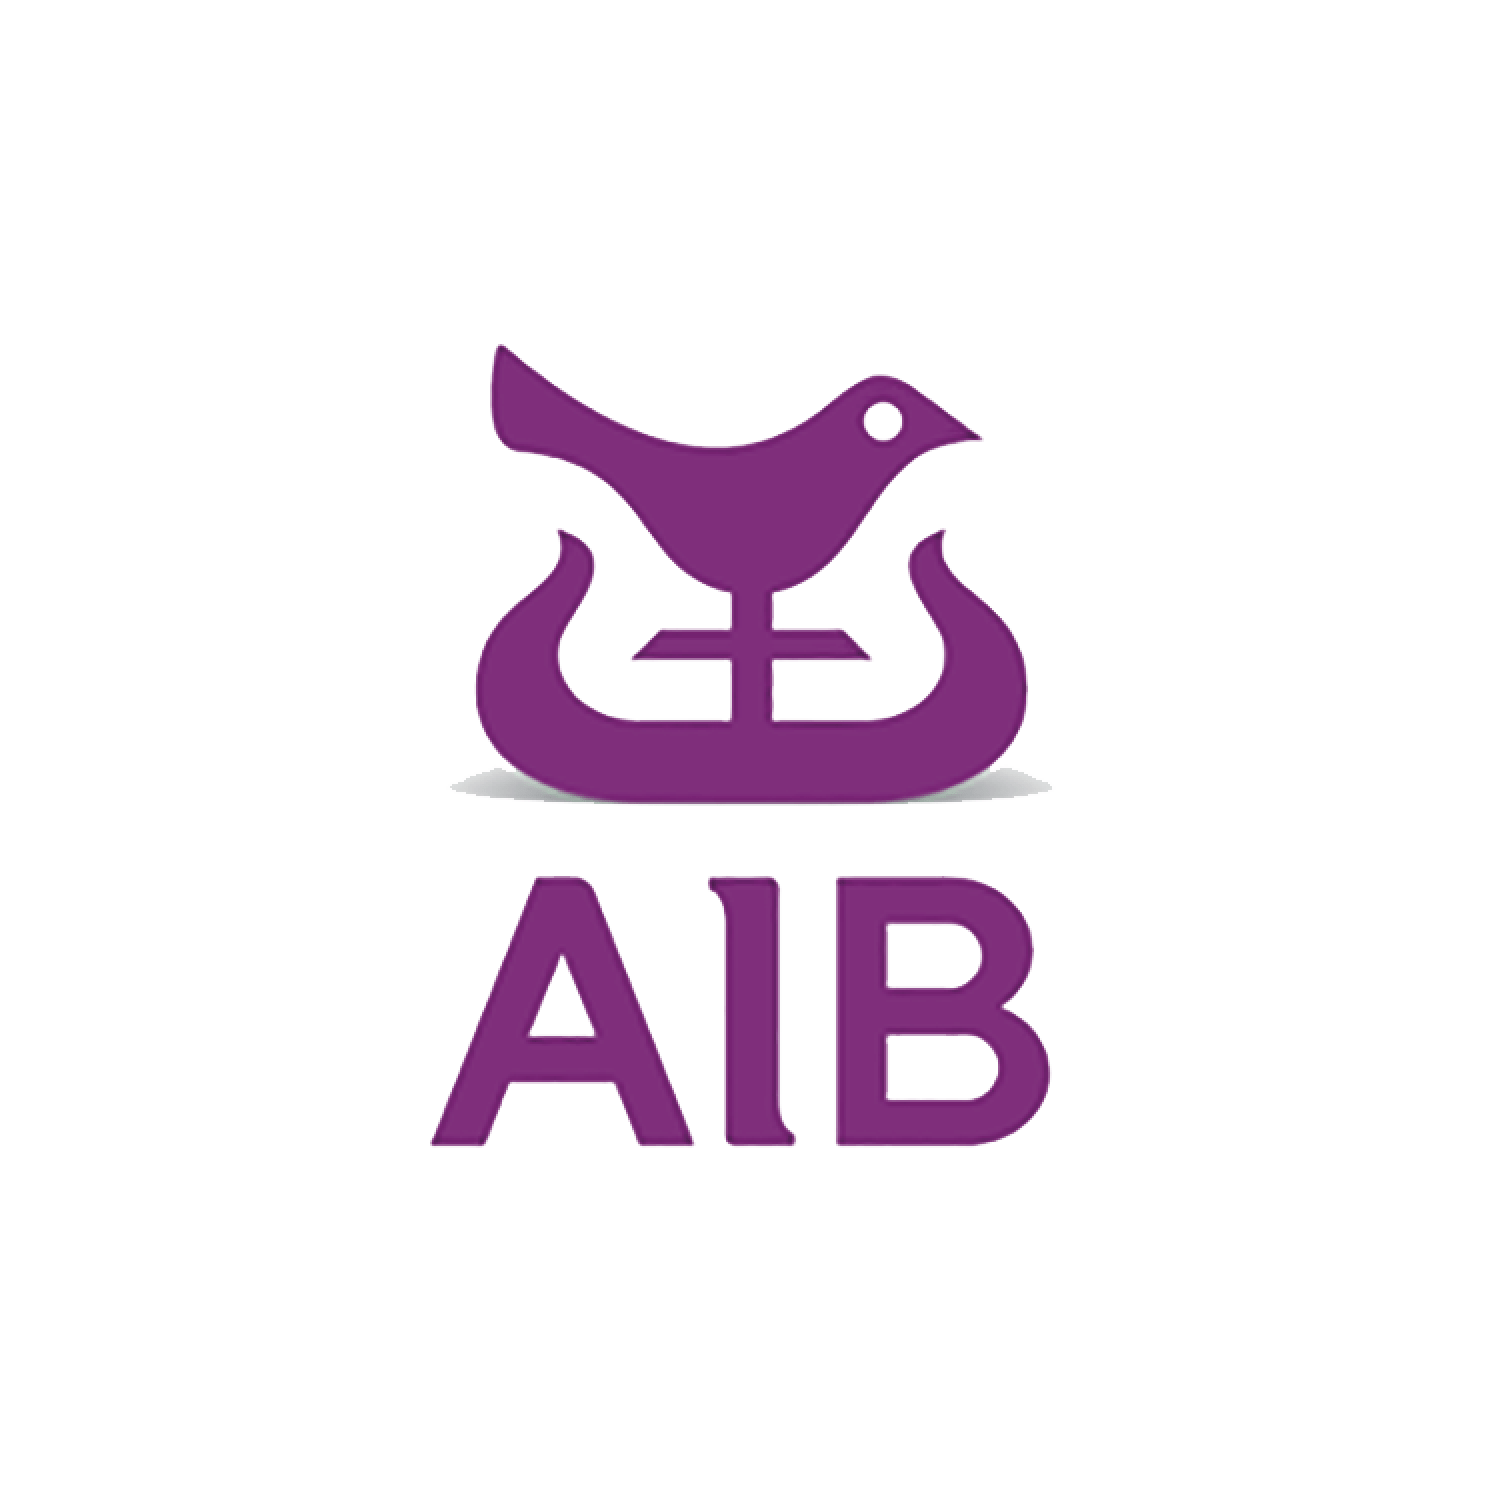 AIB no background